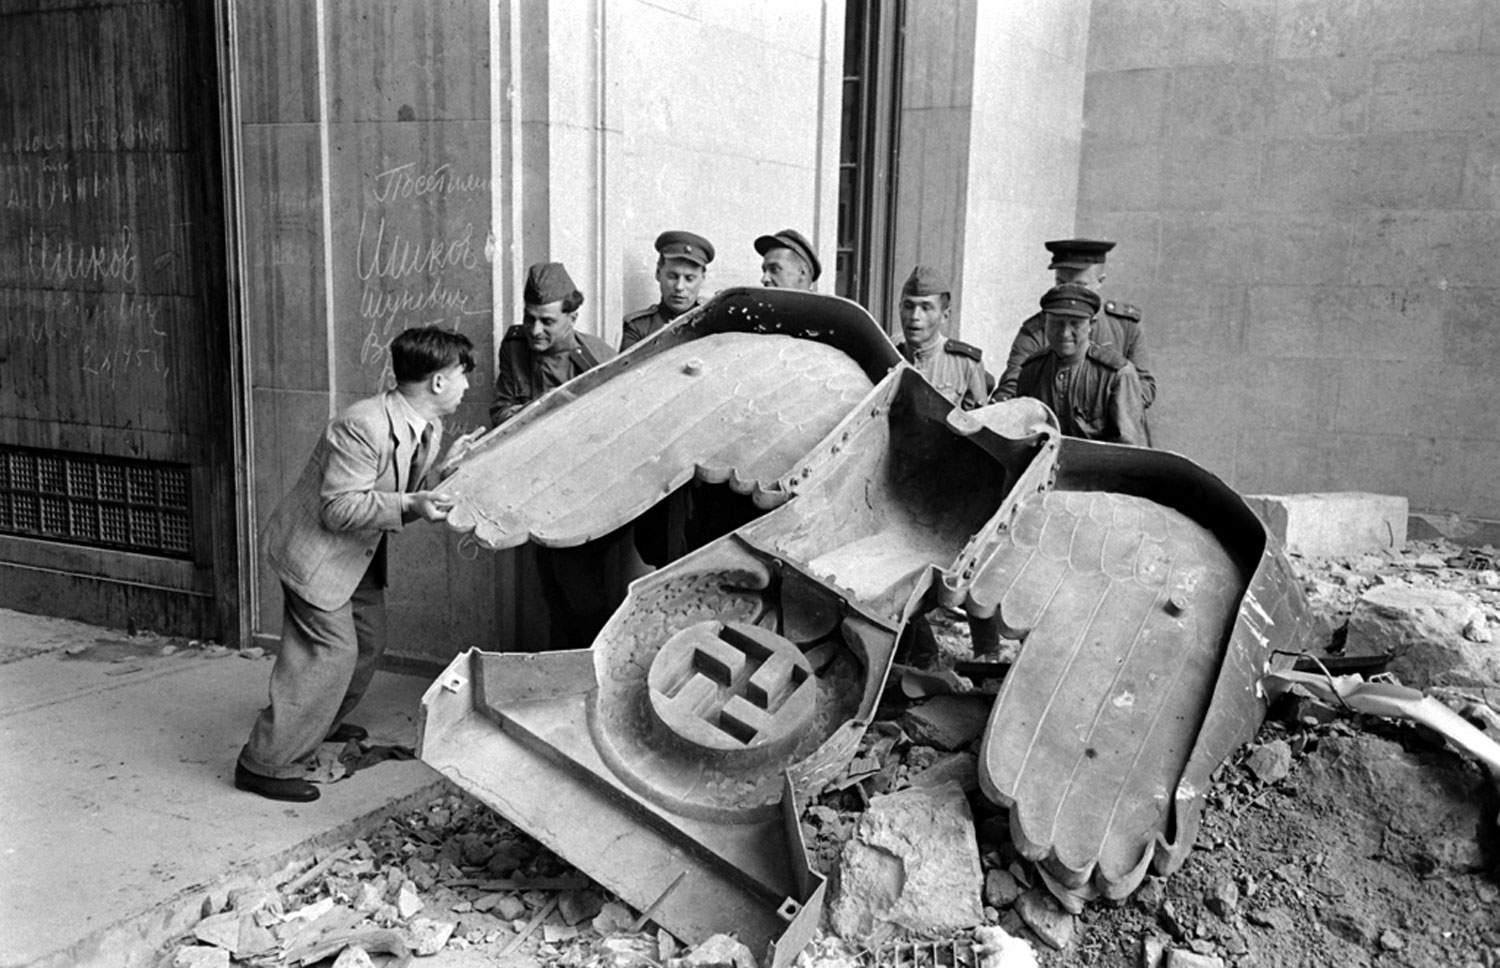 <b>Not published in LIFE.</b> Russian soldiers and a civilian struggle to move a large bronze Nazi Party eagle that once loomed over a doorway of the Reich Chancellery, Berlin, 1945.